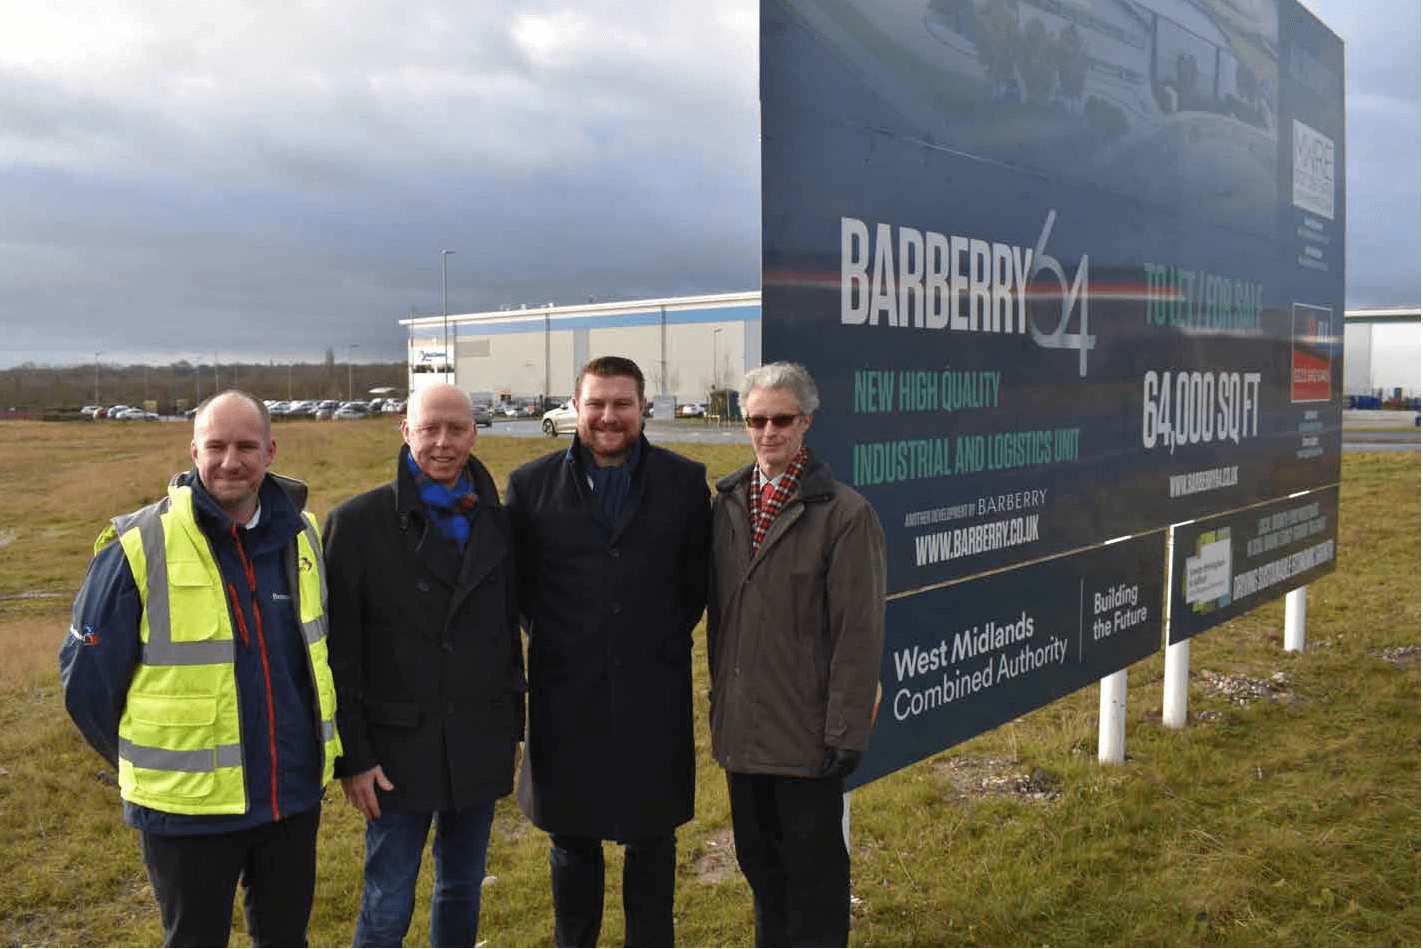 CAPTION: Construction of a 64,000 sq ft warehouse unit is set to start at Kingswood Lakeside Business Park in Cannock. Pictured, from left, are Paul Barfoot, of Benniman, Nick Oakley, head of property finance at Frontier Development Capital, Jon Robinson, development director at Barberry Developments, and Eric Henderson, capital projects manager at Staffordshire County Council.